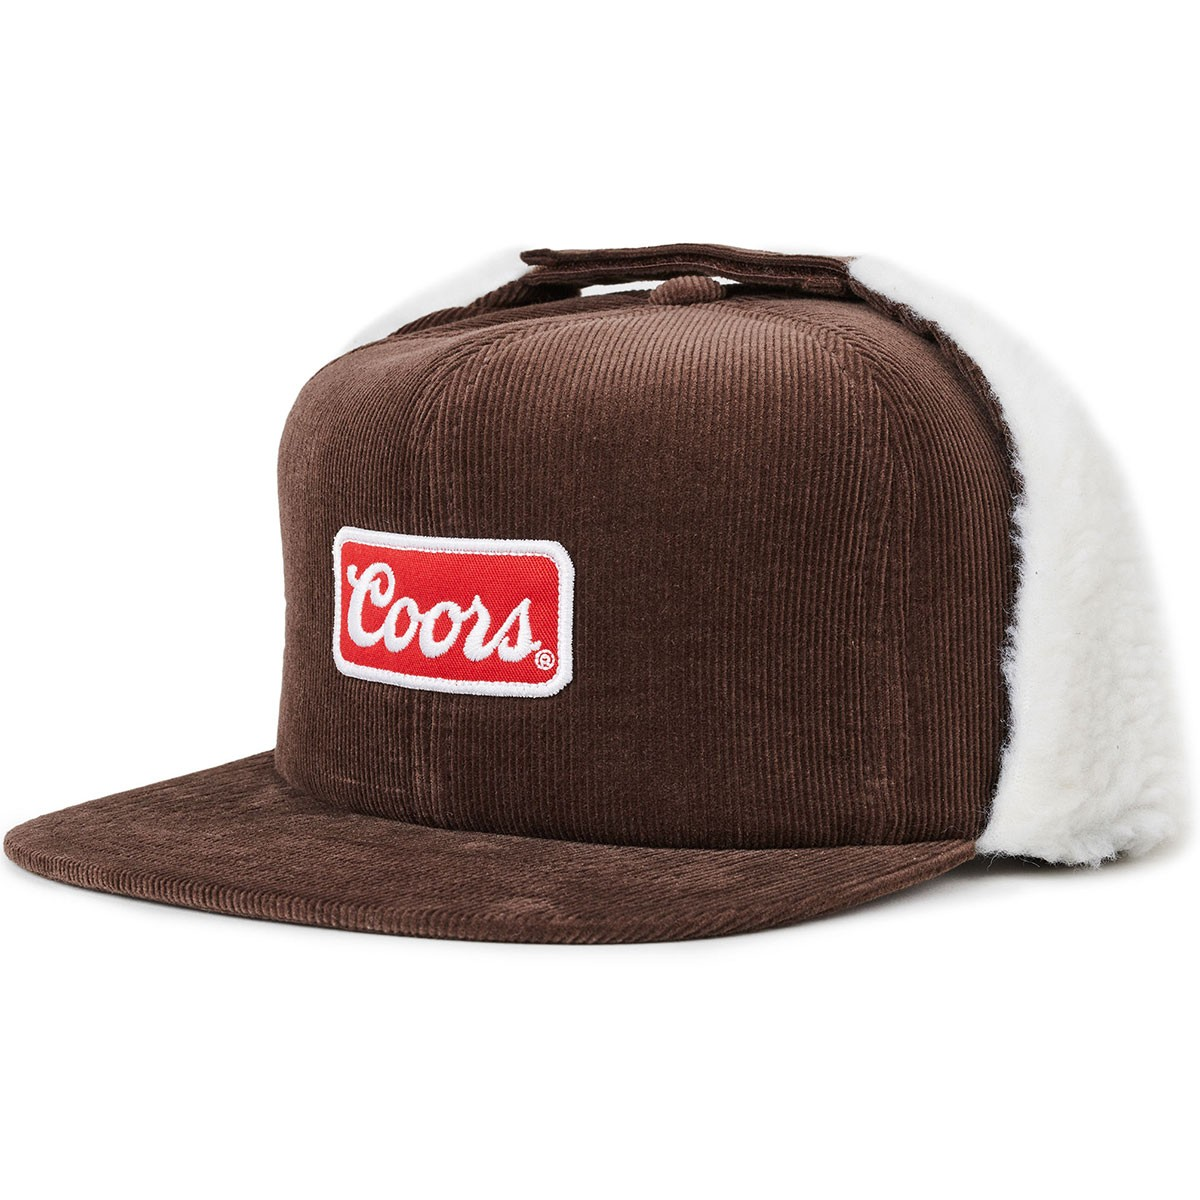 Brixton X Coors Signature HP Ear Flap Snapback Hat - Brown 2c702560c91